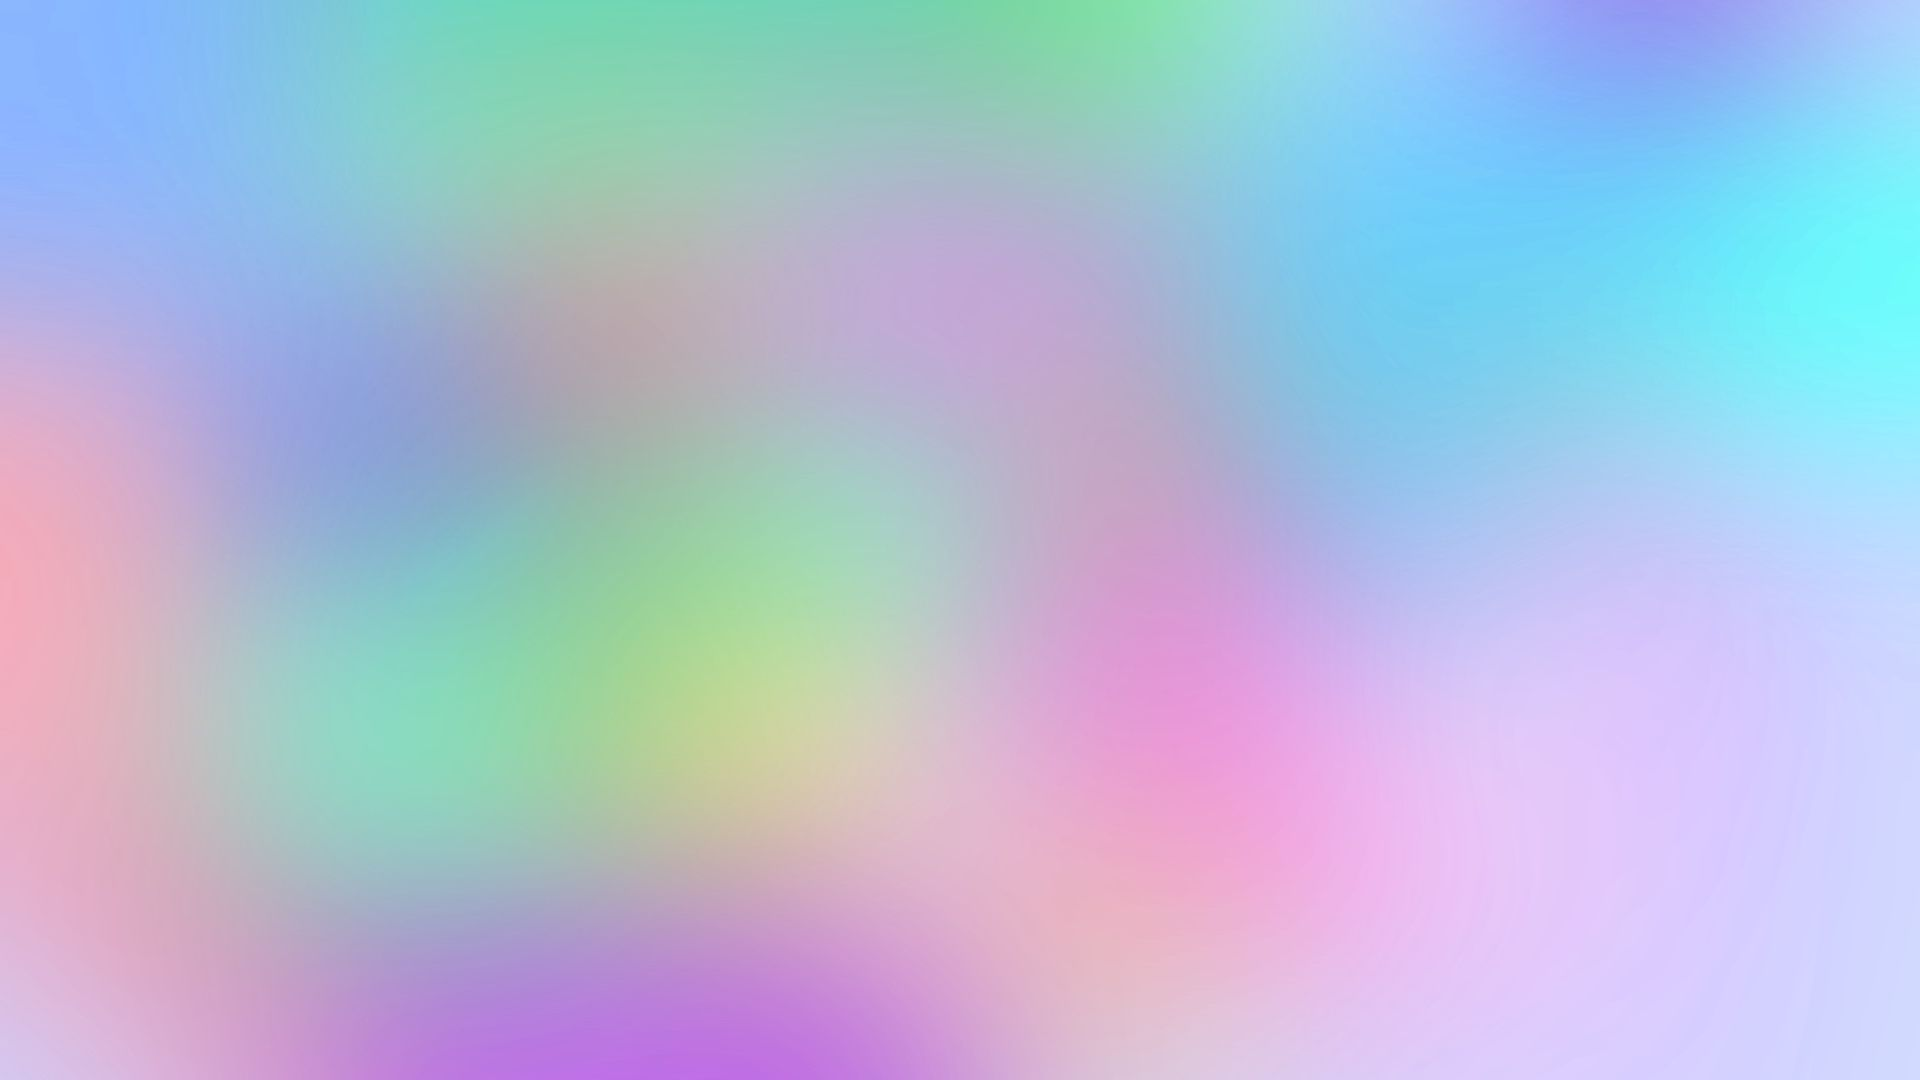 Rainbow Pastel Wallpapers Top Free Rainbow Pastel Backgrounds Wallpaperaccess